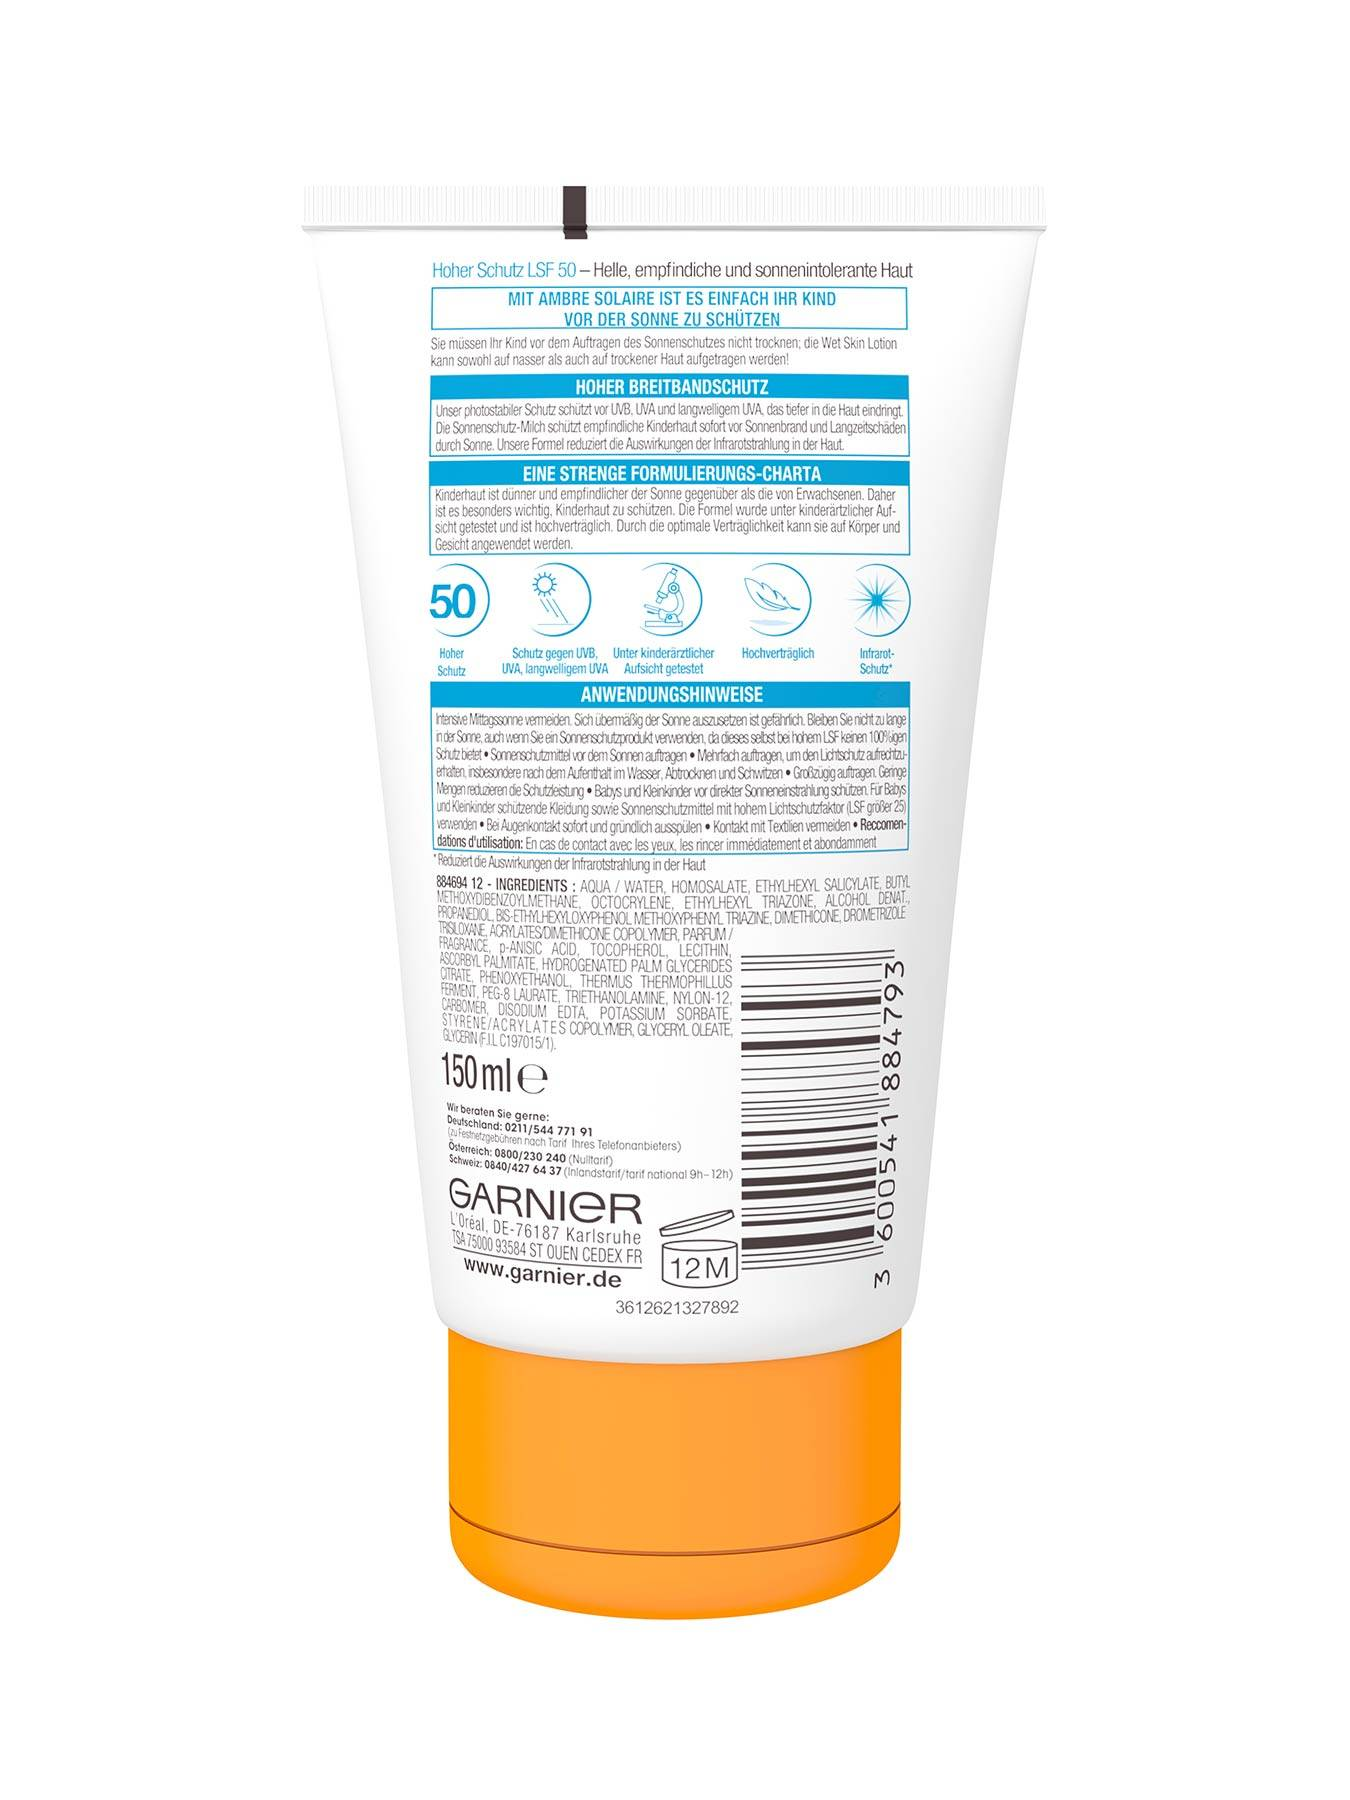 Wet-Skin-Lotion-LSF-50-Ambre-Solaire-Kids-Sensitiv-Expert-Plus-150ml-Rueckseite-Garnier-Deutschl-gr